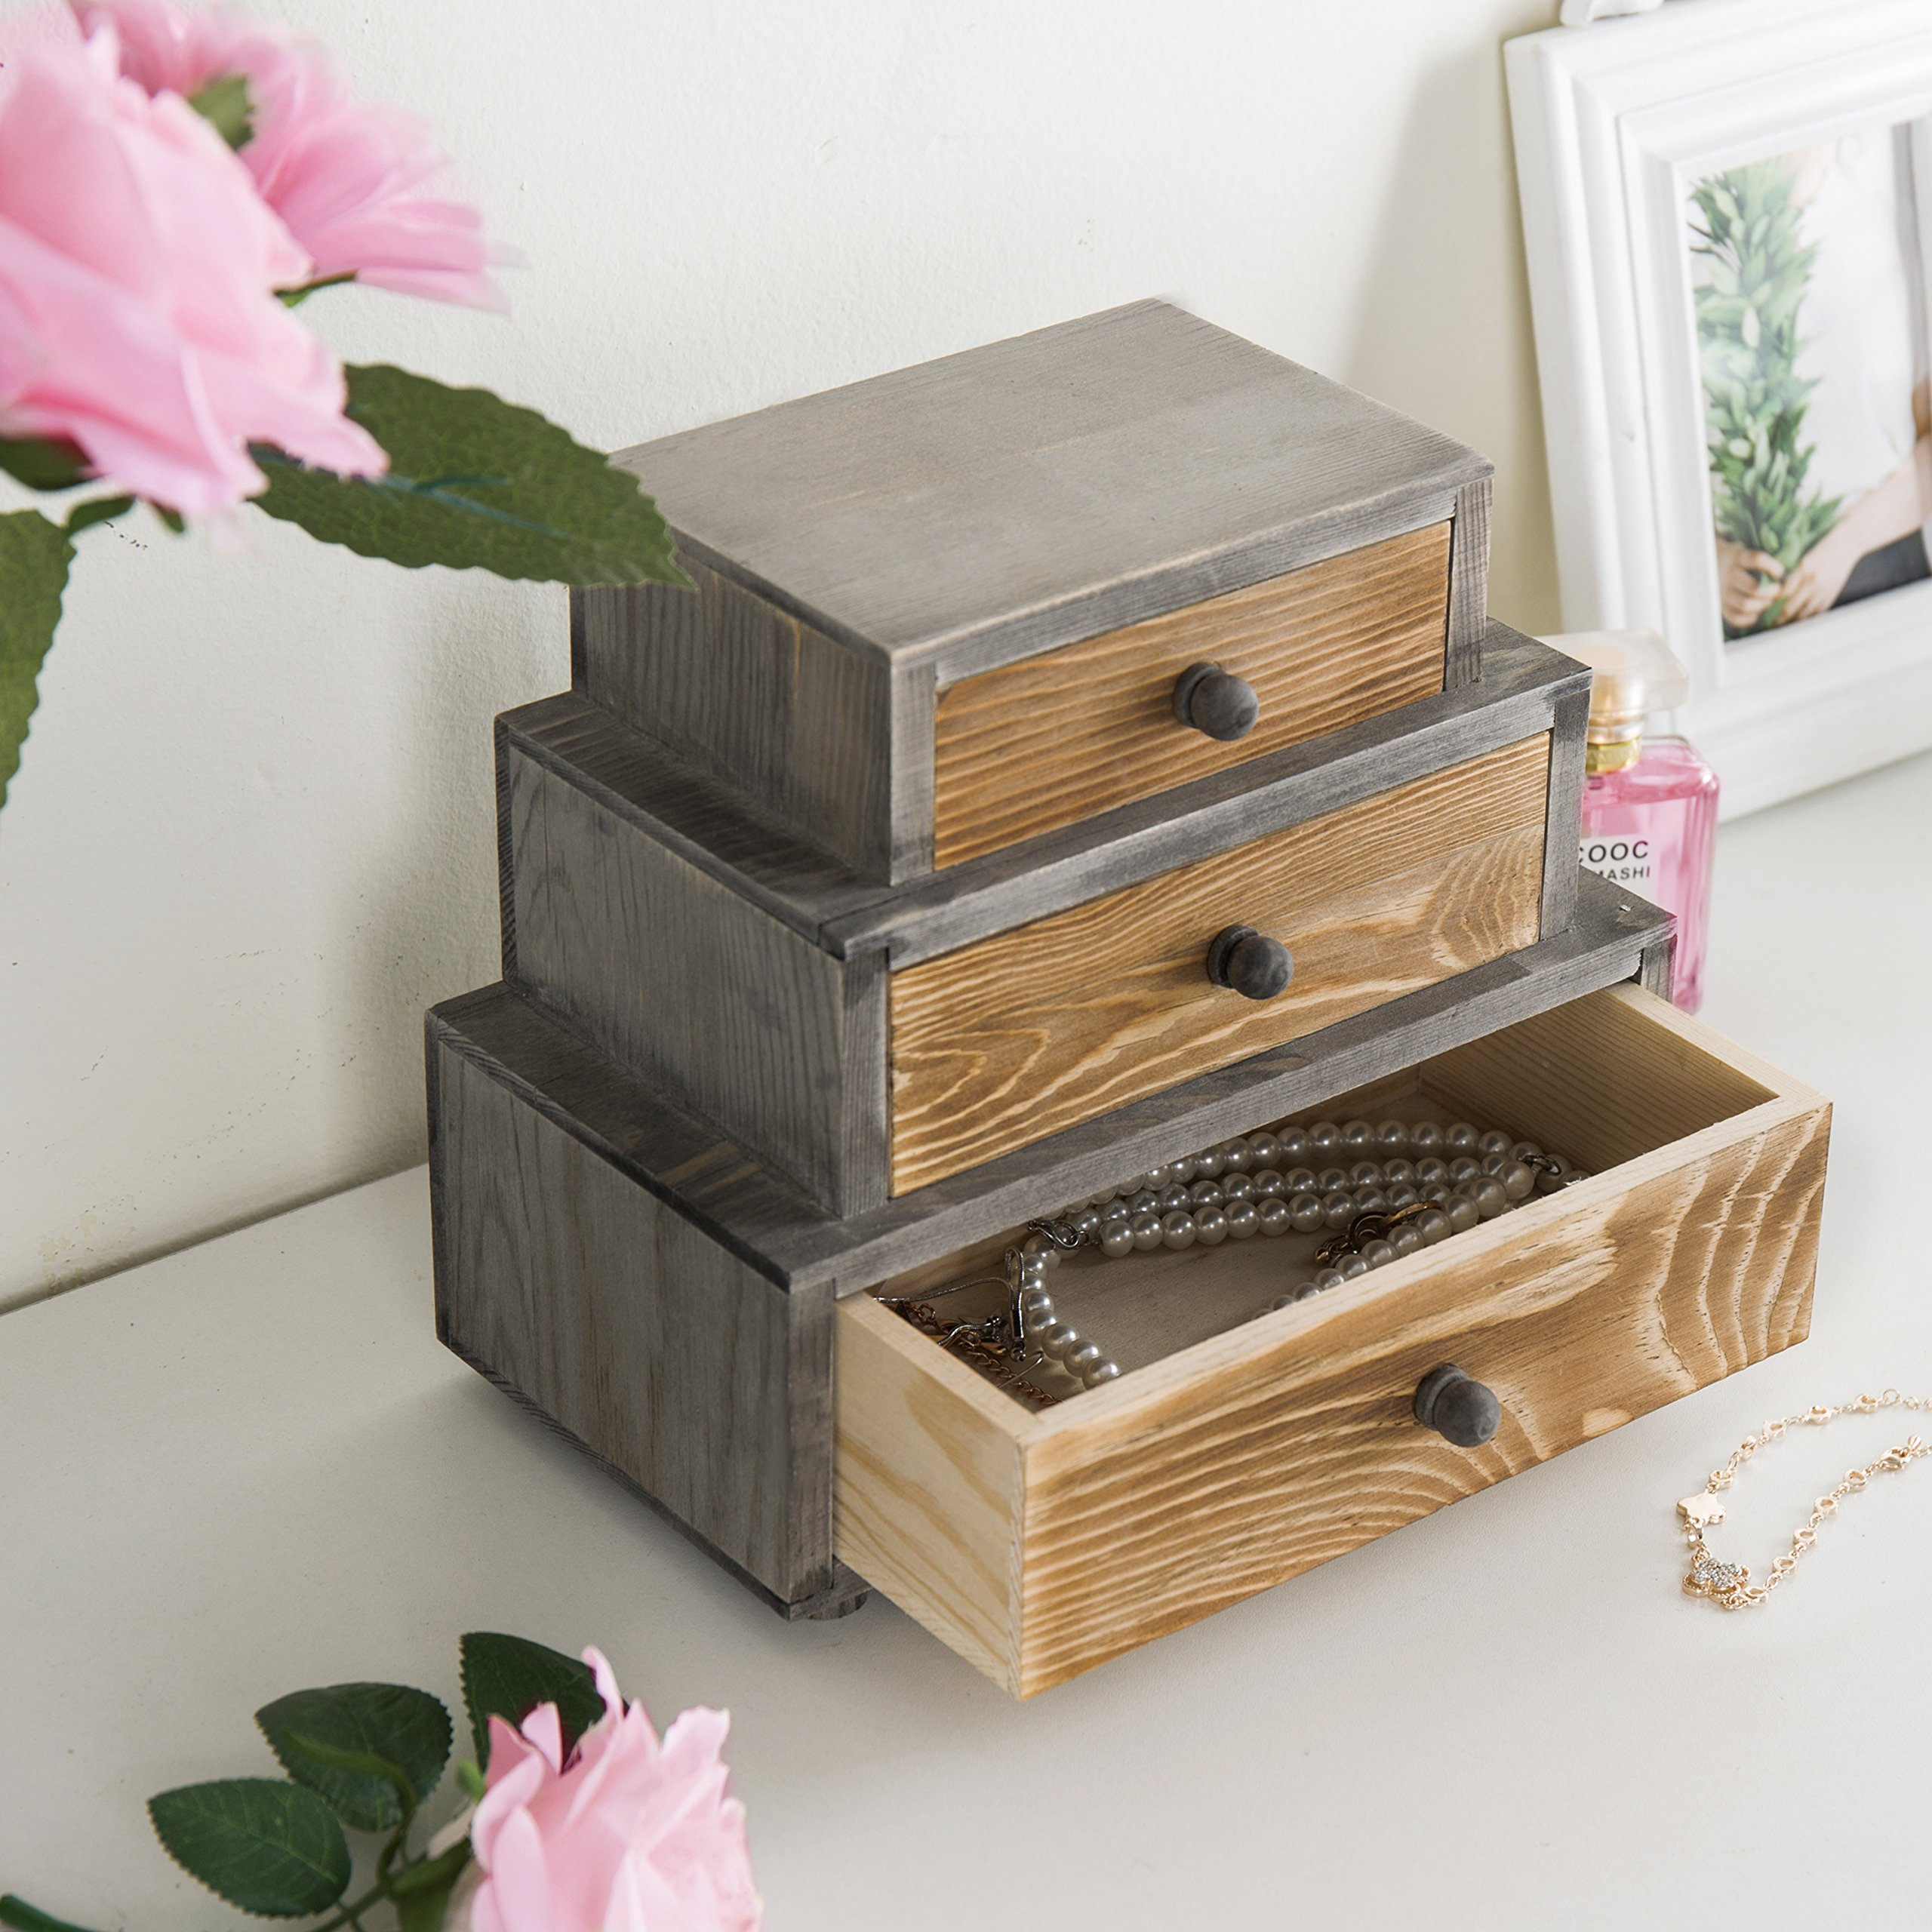 MyGift 3-Drawer Rustic Wood Office Storage Organizer by MyGift (Image #4)